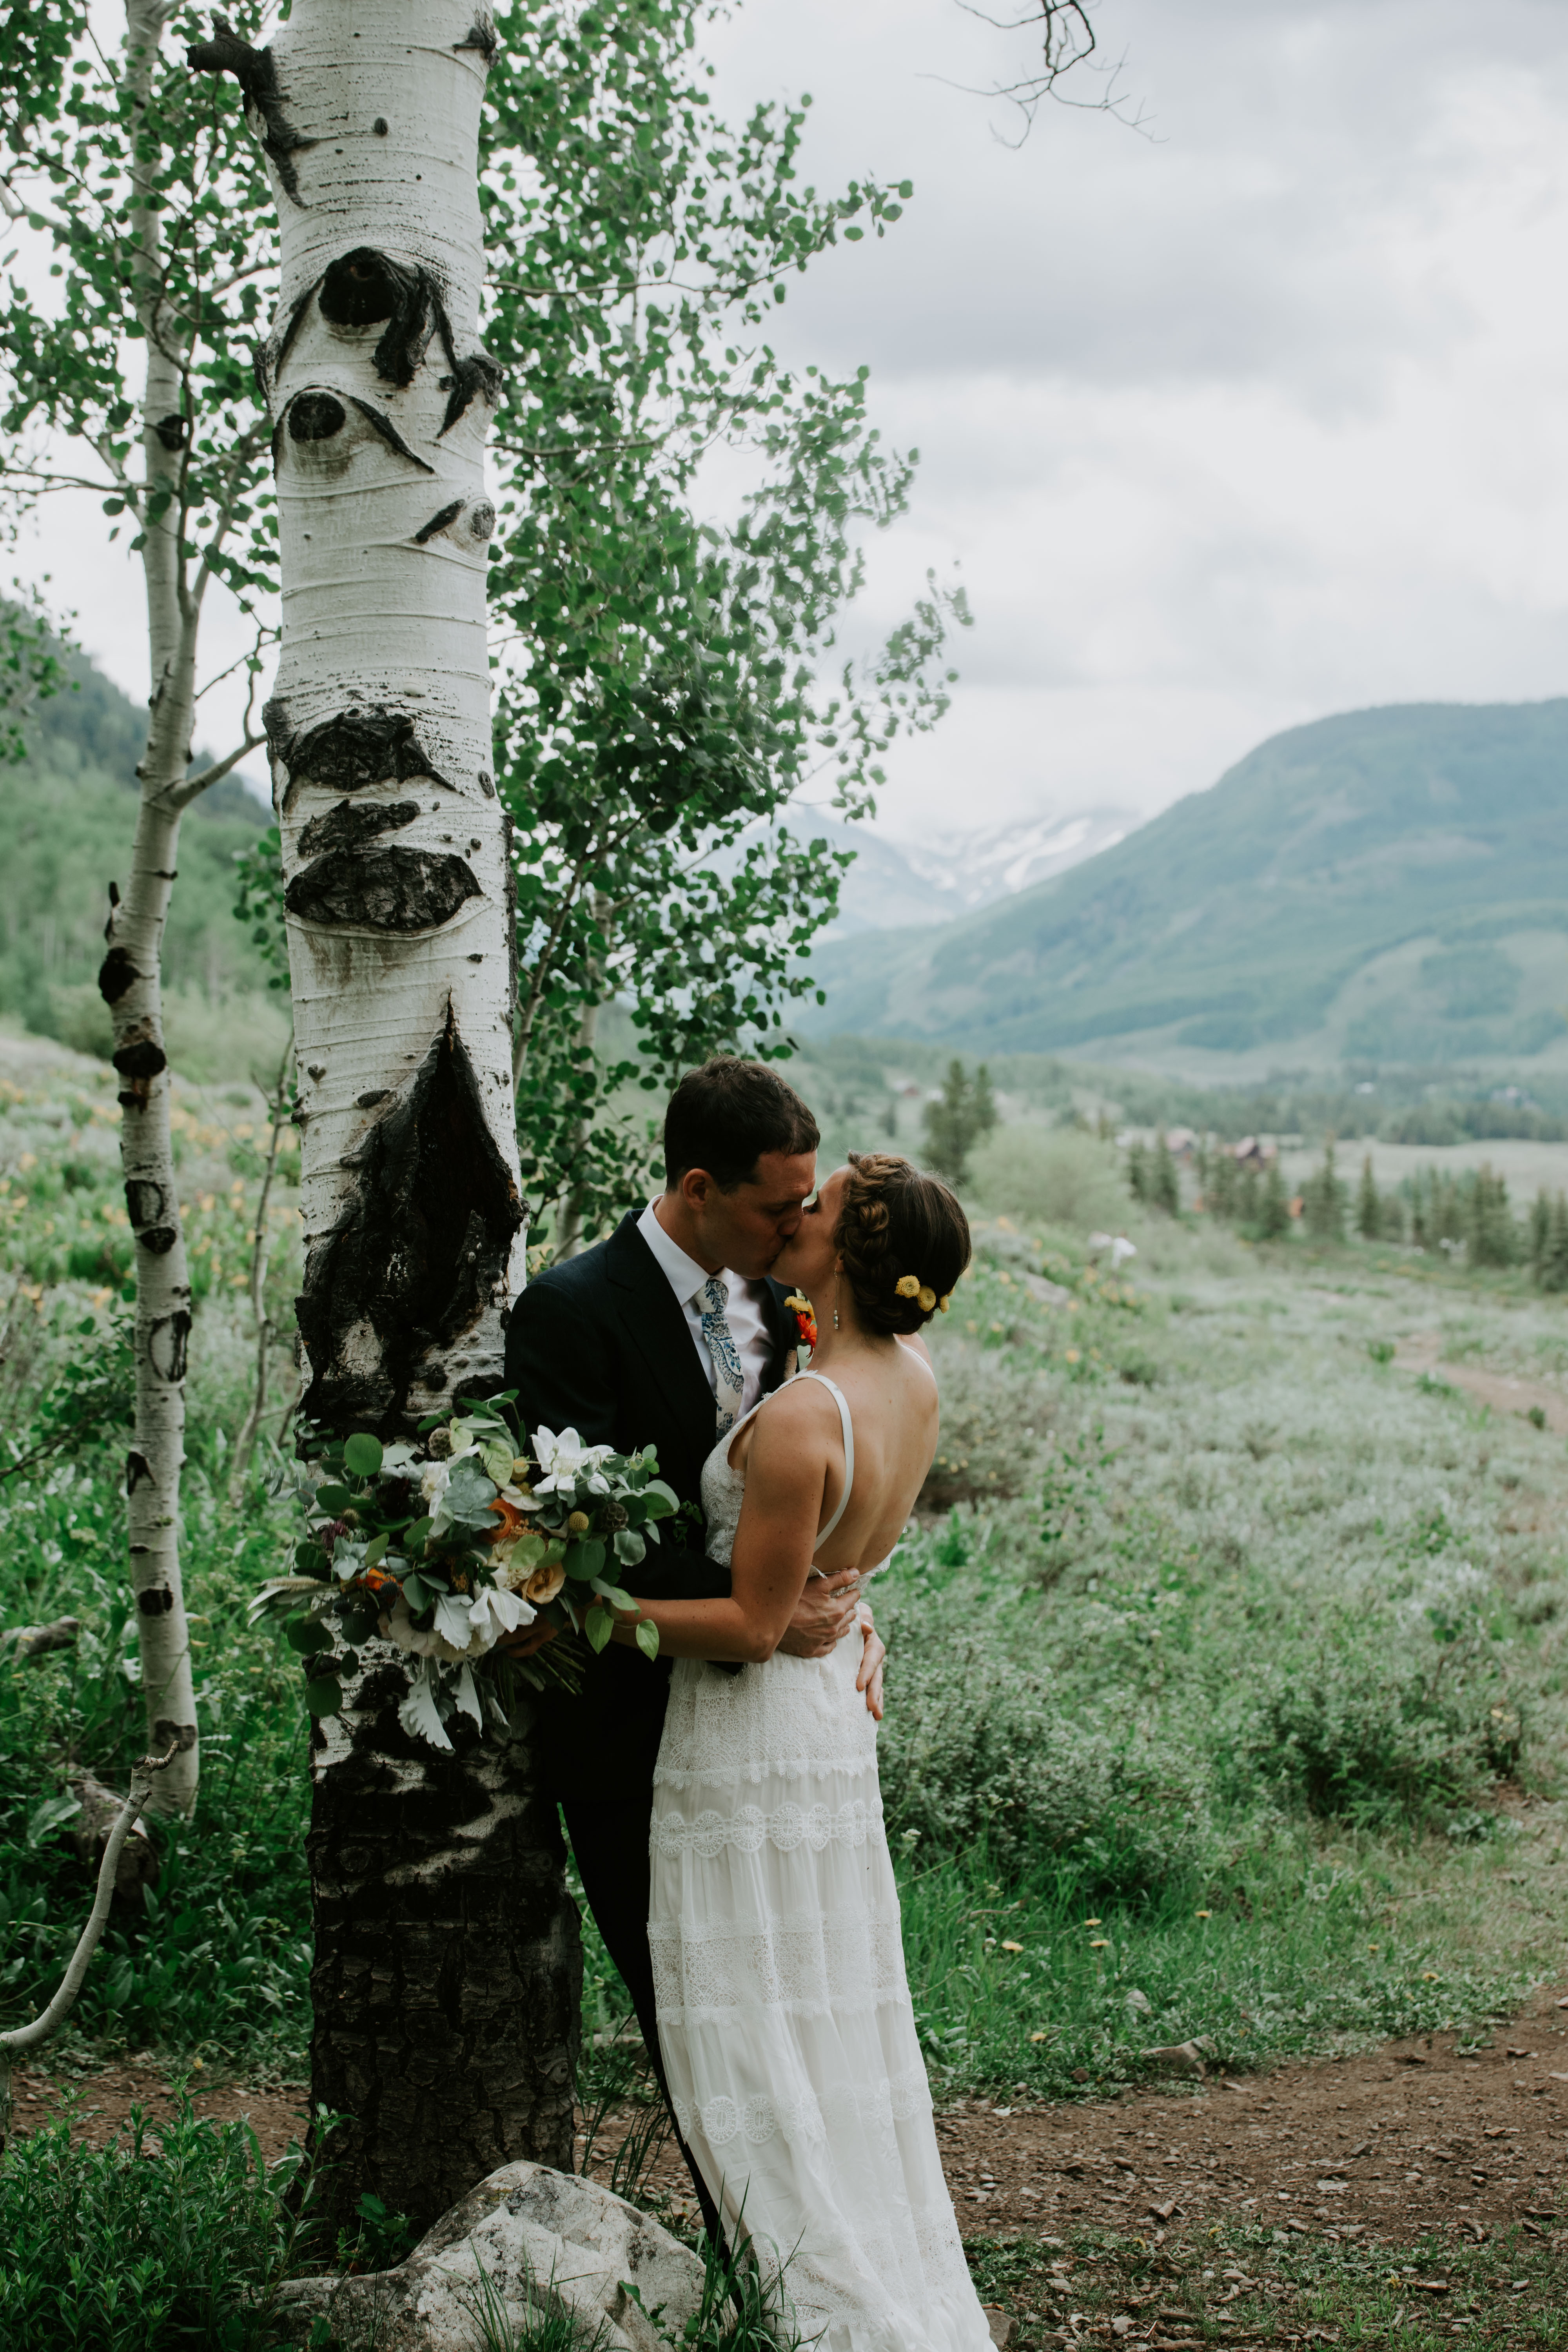 Laura_Alexe_Wedding_Crested_Butte_MegONeillPhotography__180616_85